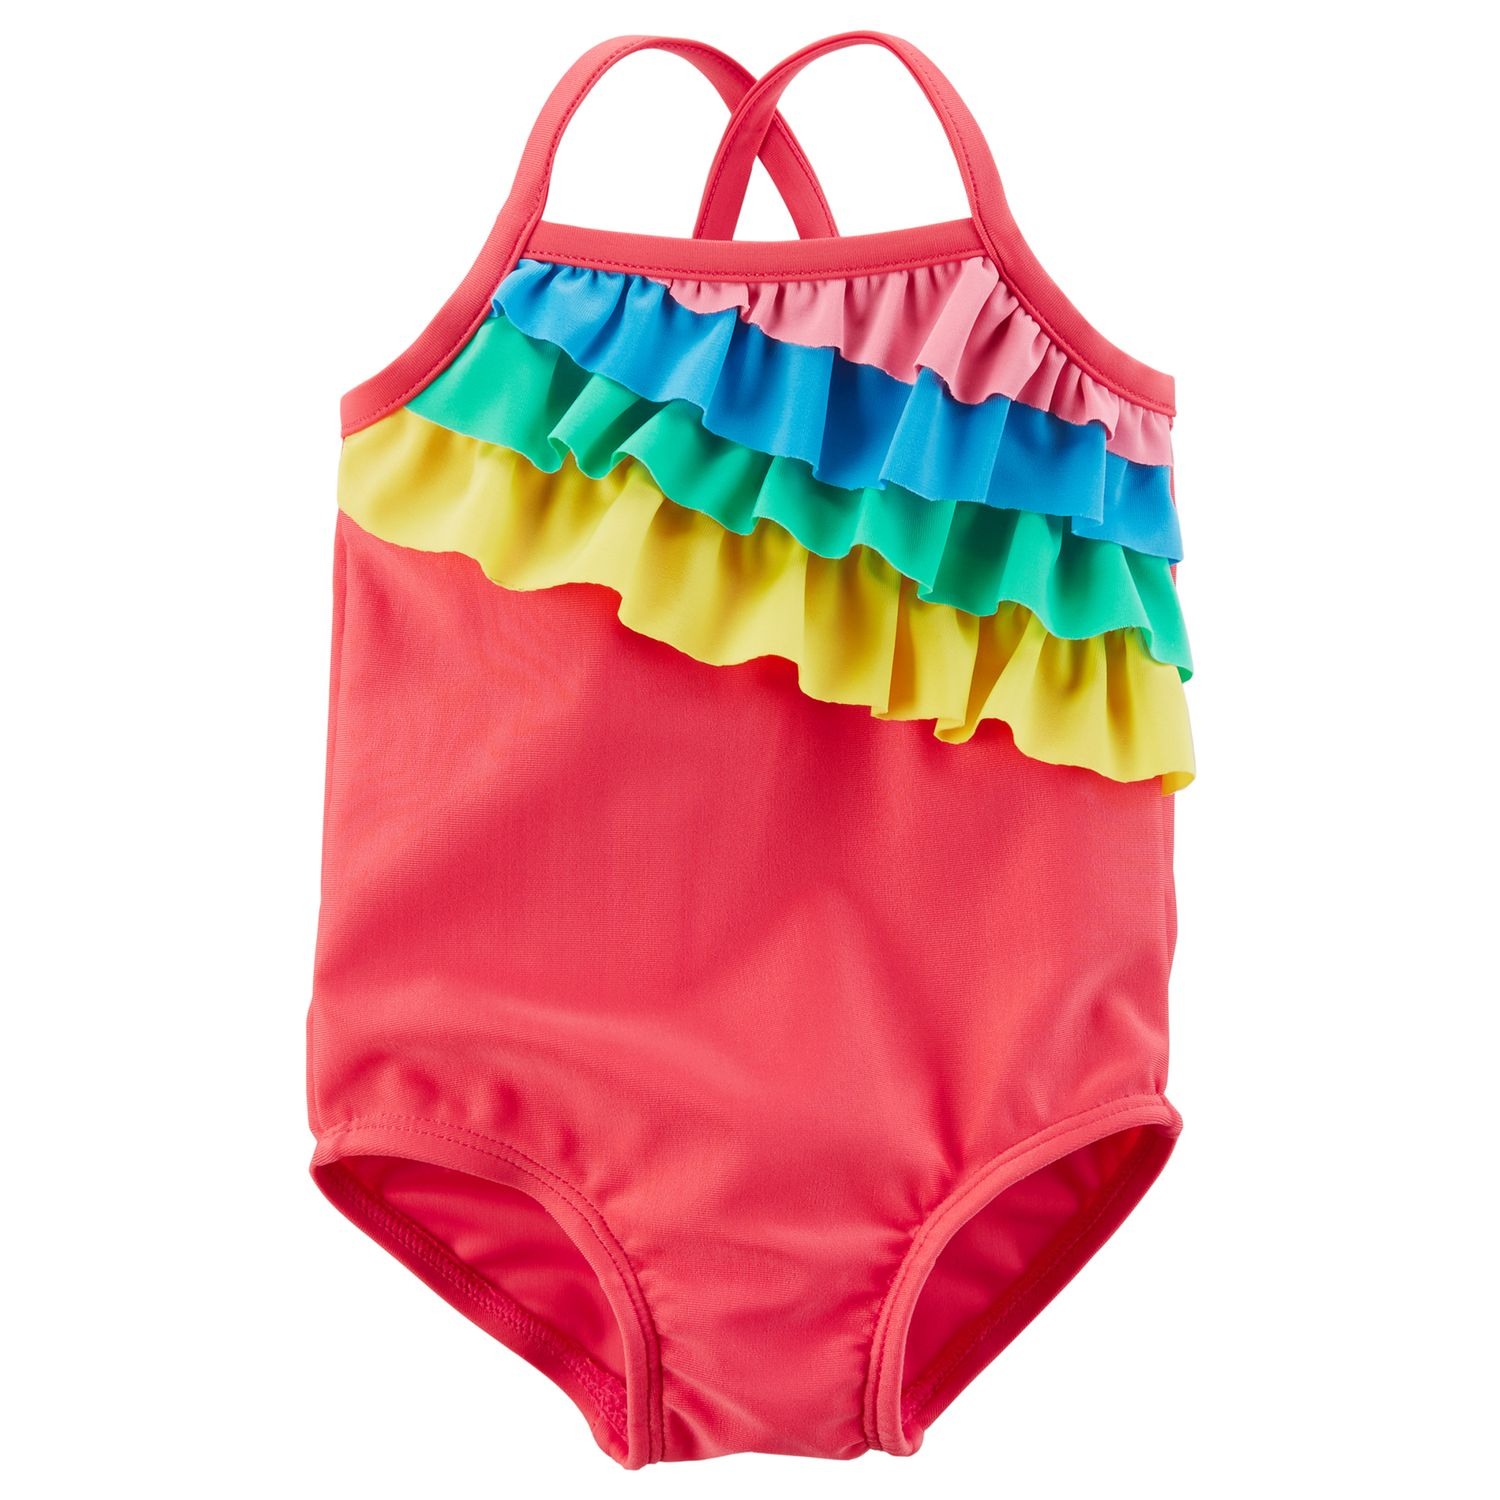 Baby Girl Carteru0027s Rainbow Ruffle Swimsuit  sc 1 st  Kohlu0027s & Baby Girl Swimsuits Toddler Girl Swimwear | Kohlu0027s